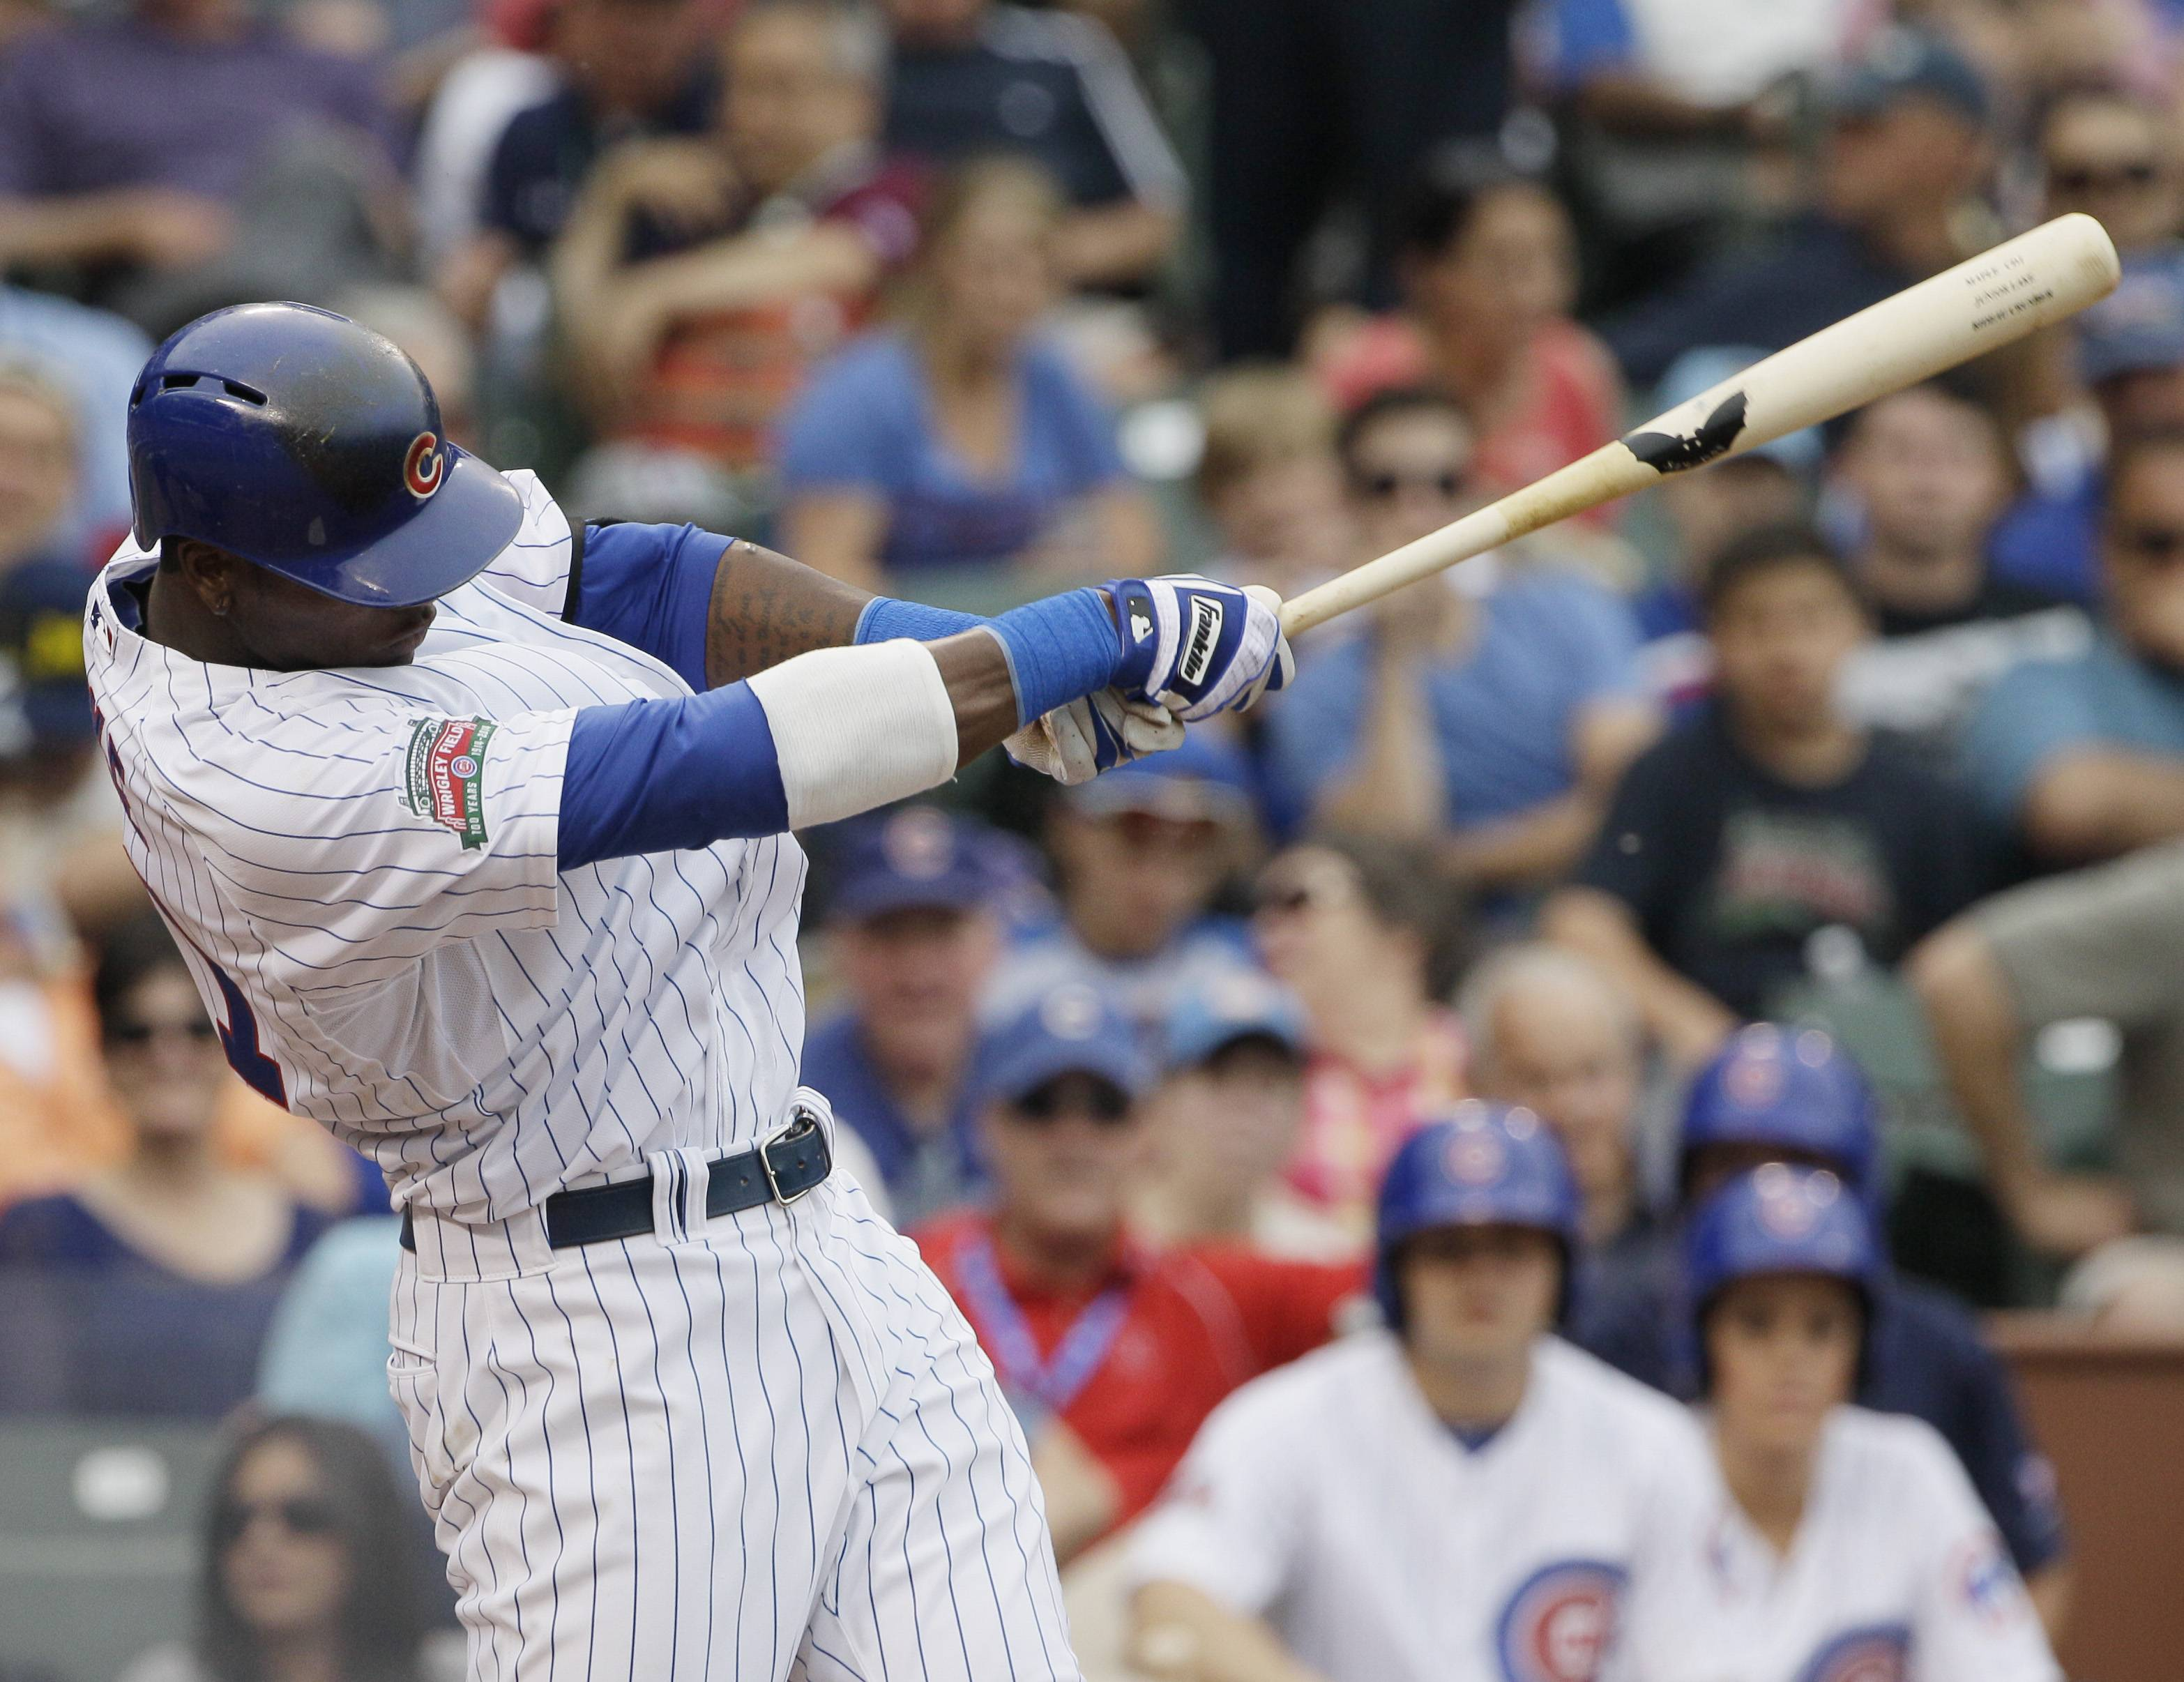 The Cubs' Junior Lake hits a solo home run during the fifth inning of a baseball game against the Miami Marlins in Chicago, Saturday, June 7, 2014.